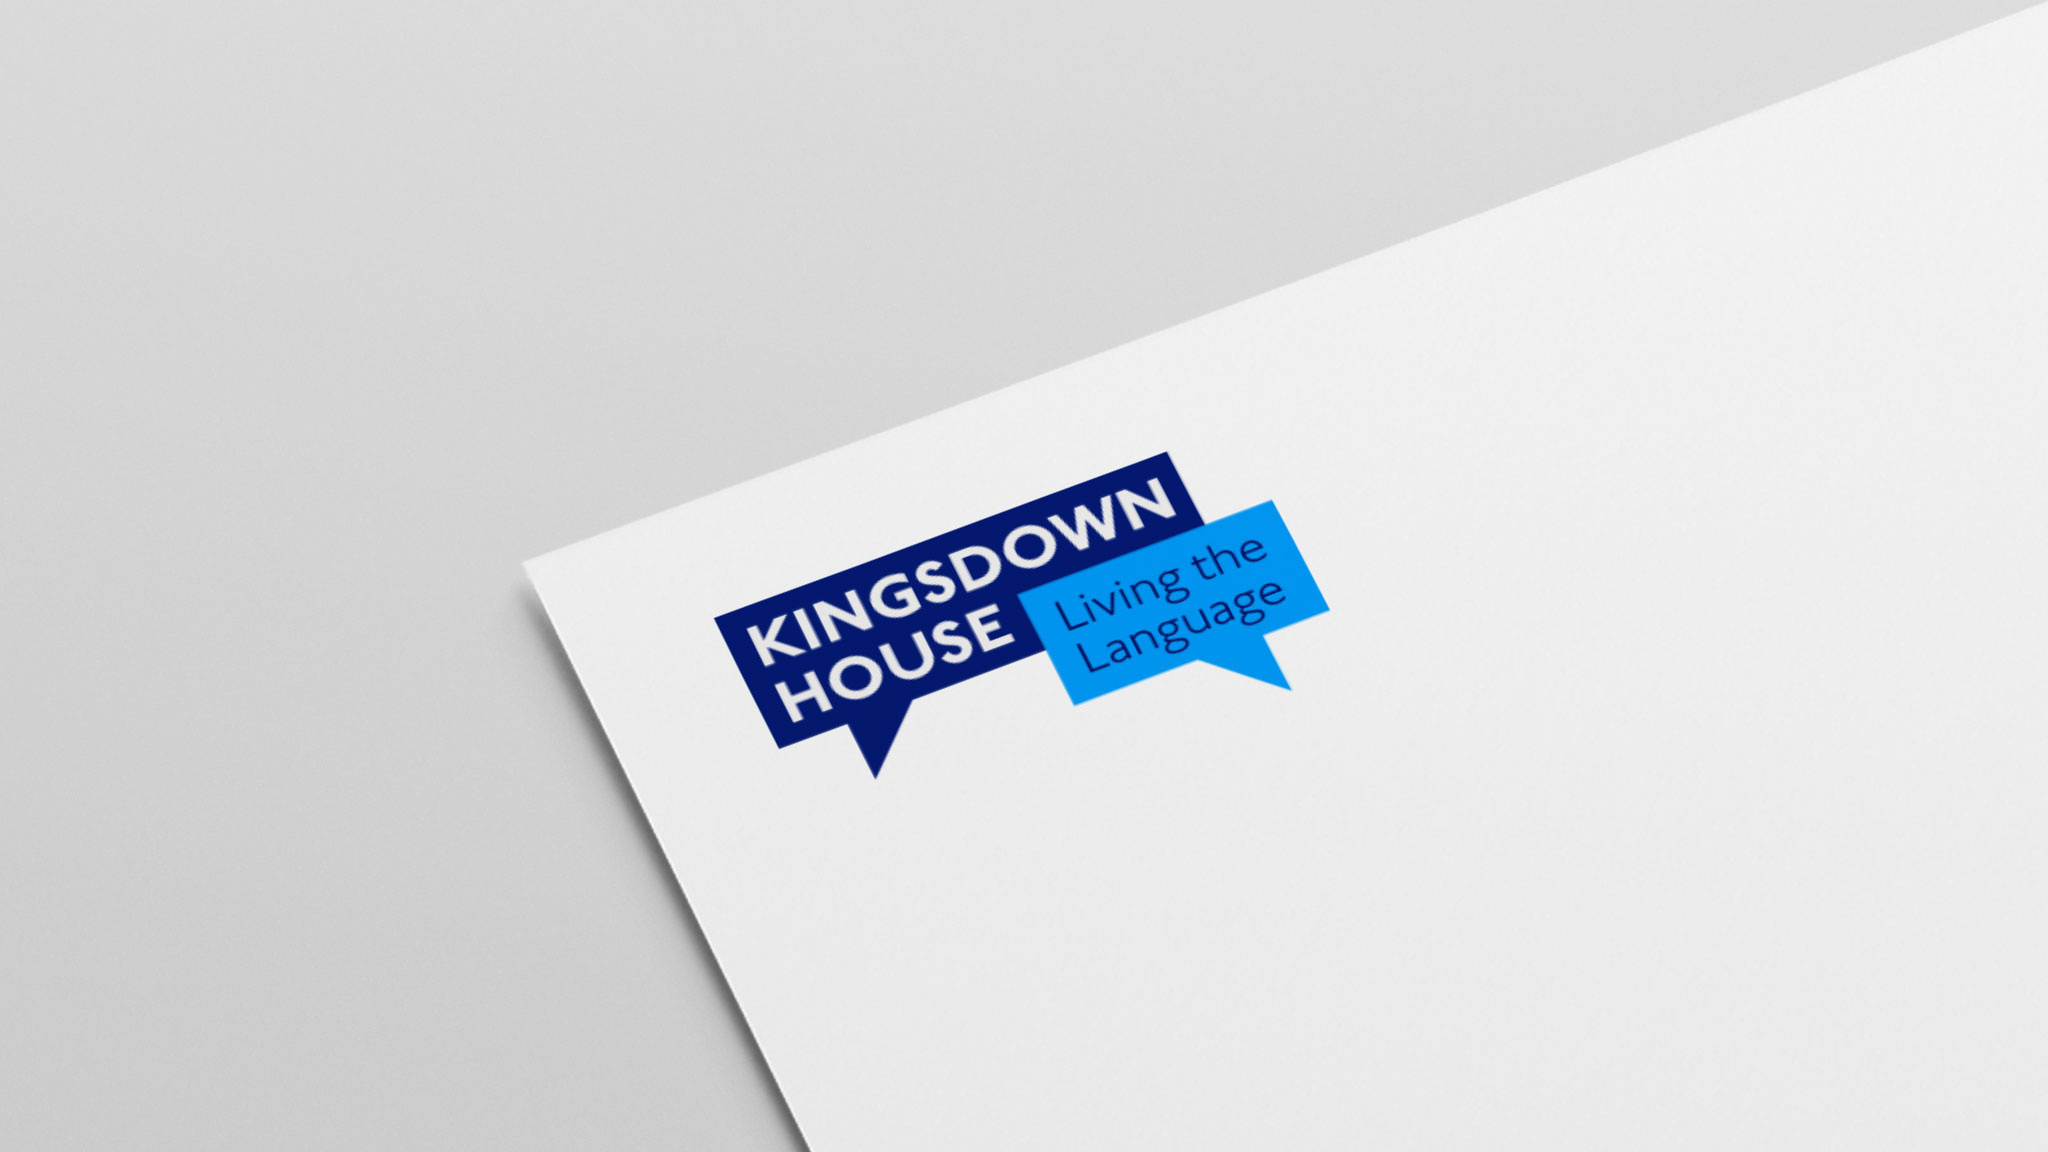 Kingsdown House